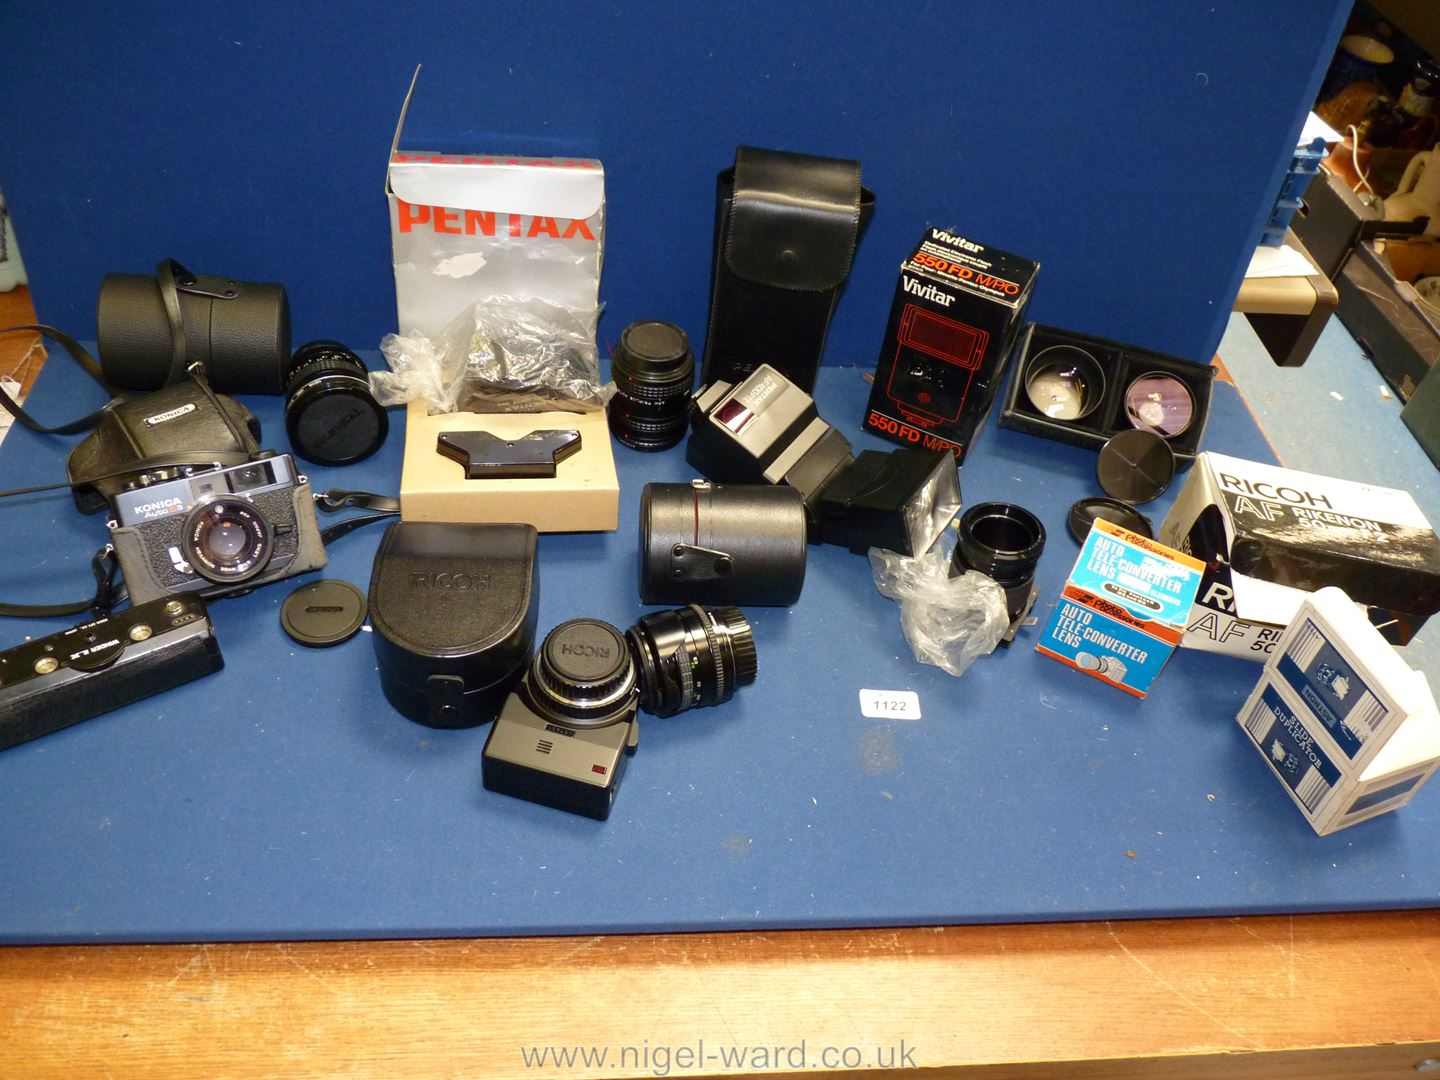 A quantity of Camera equipment including Konica Auto S3 with Hexanon 38mm f/1.